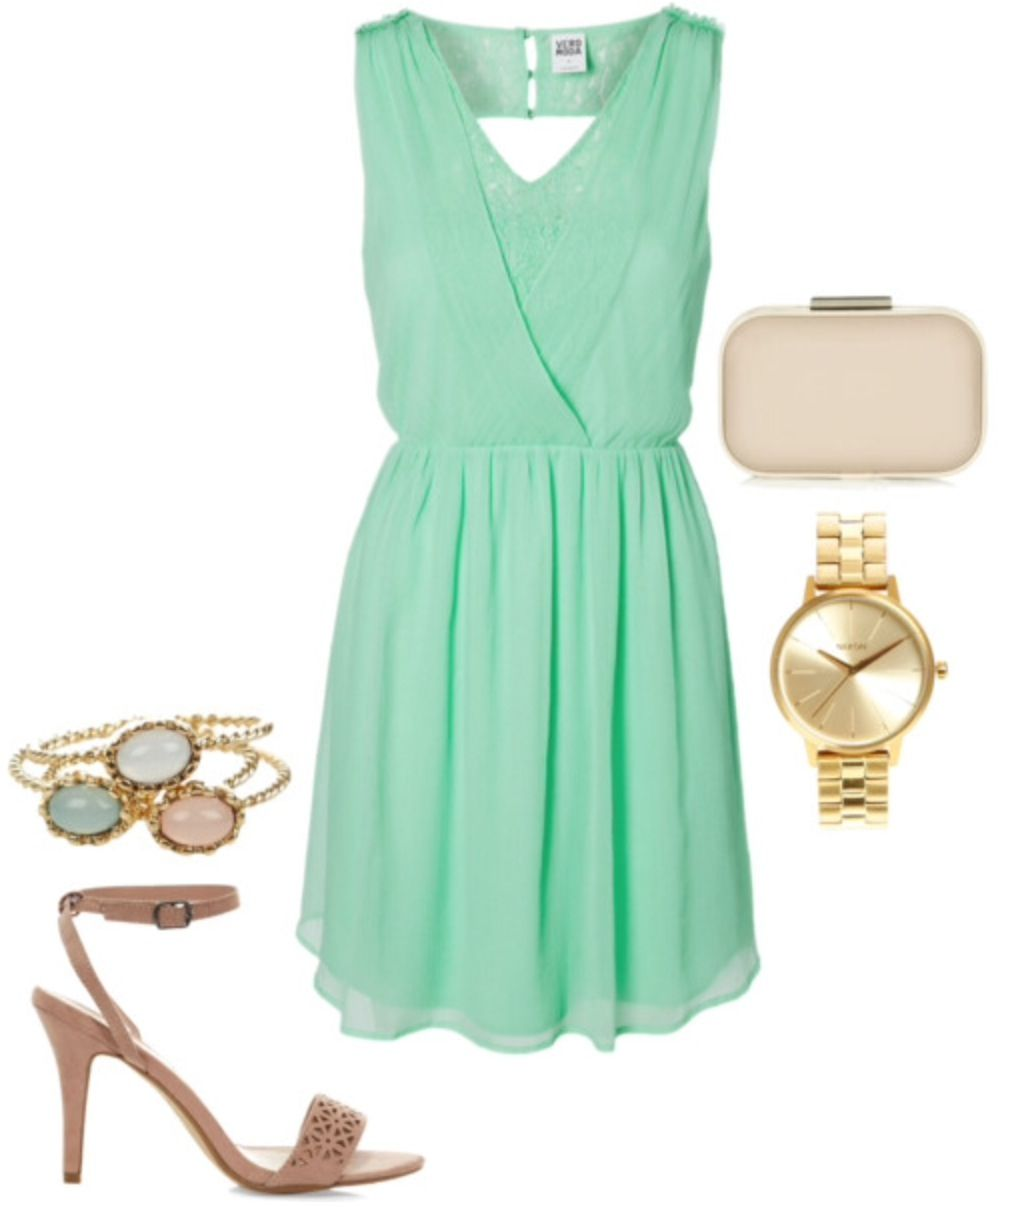 August wedding guest outfit so far. | My Style | Pinterest | August ...